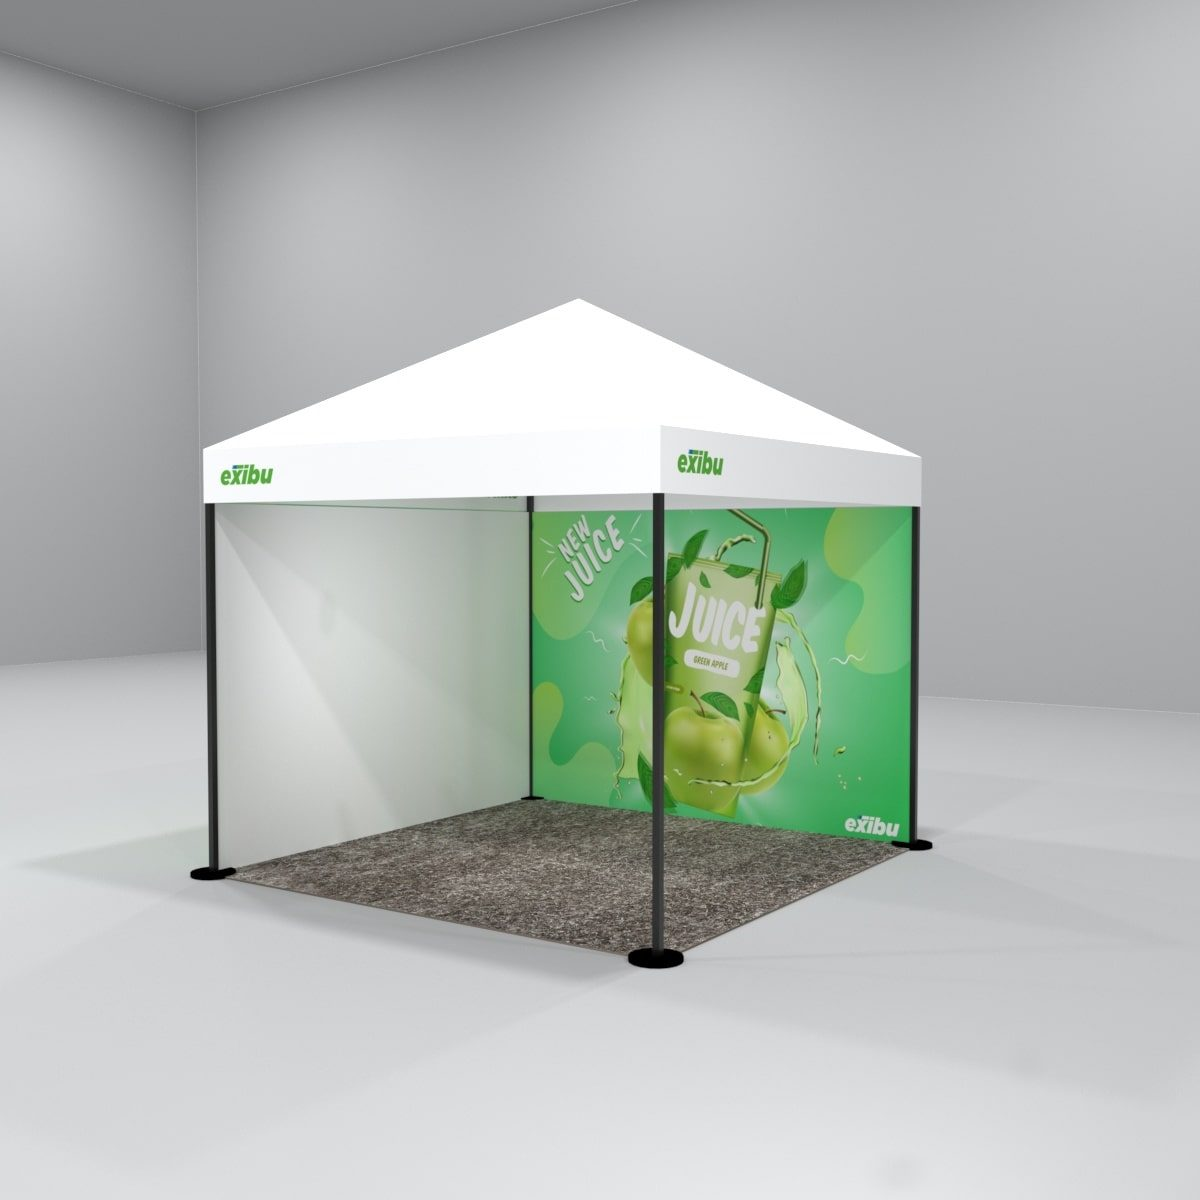 Kit 4 – 3X3 M Gazebo Tent With Backdrop And Full Sidewall